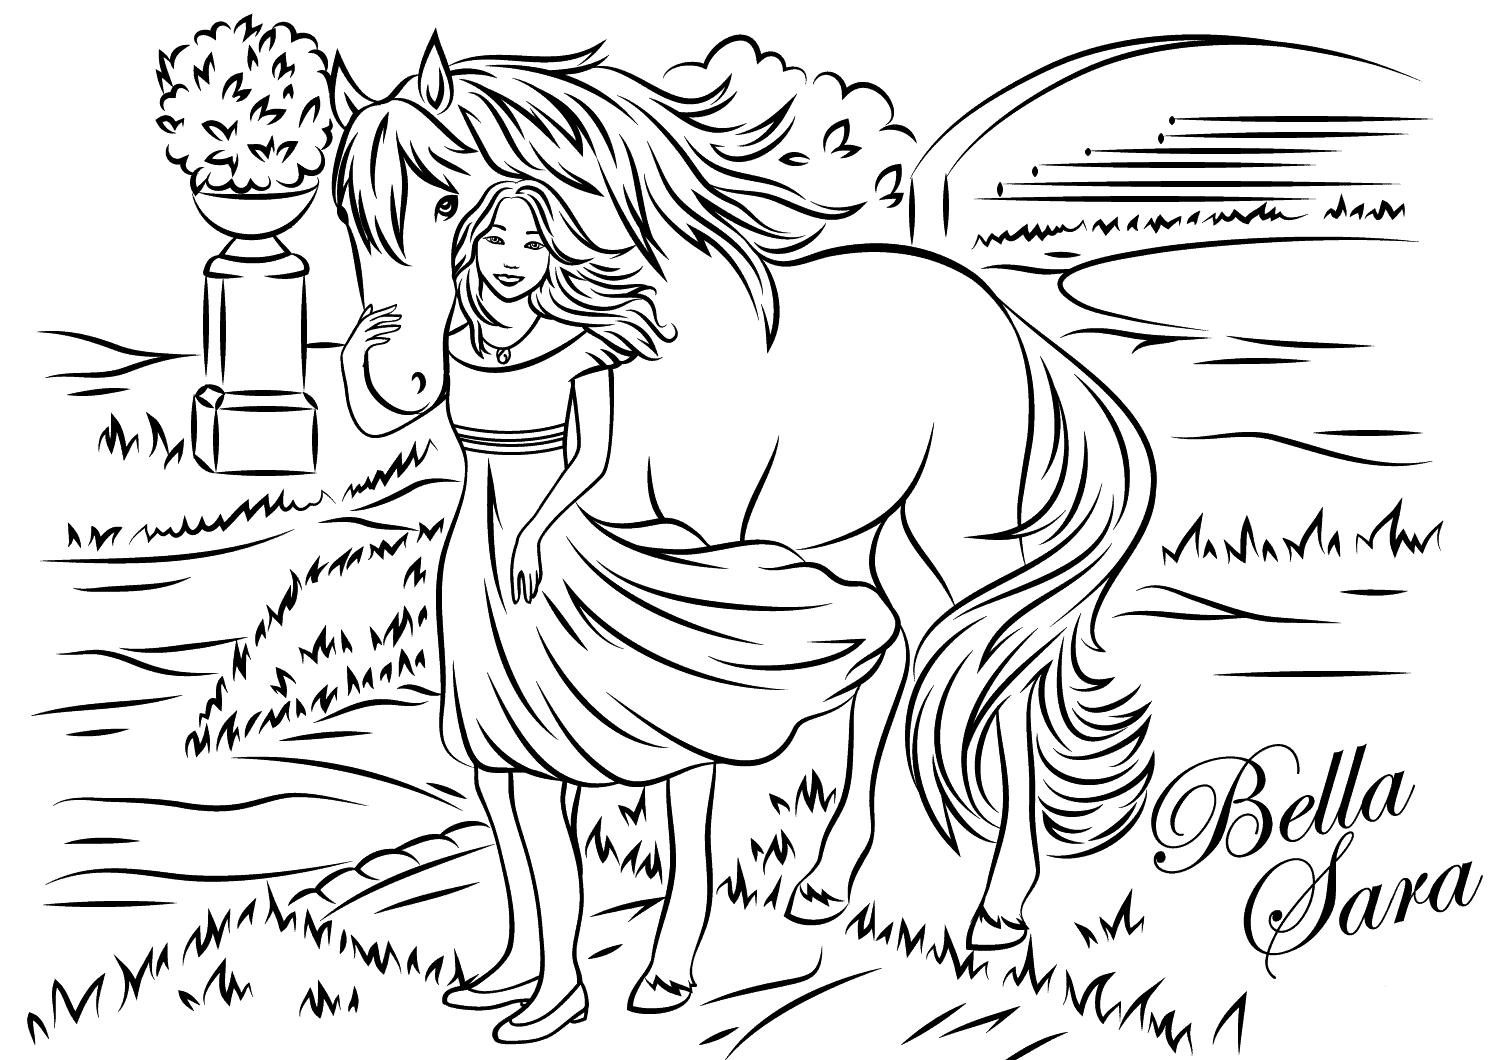 bella sara coloring pages bella sara 09 coloring page free bella sara coloring sara bella coloring pages